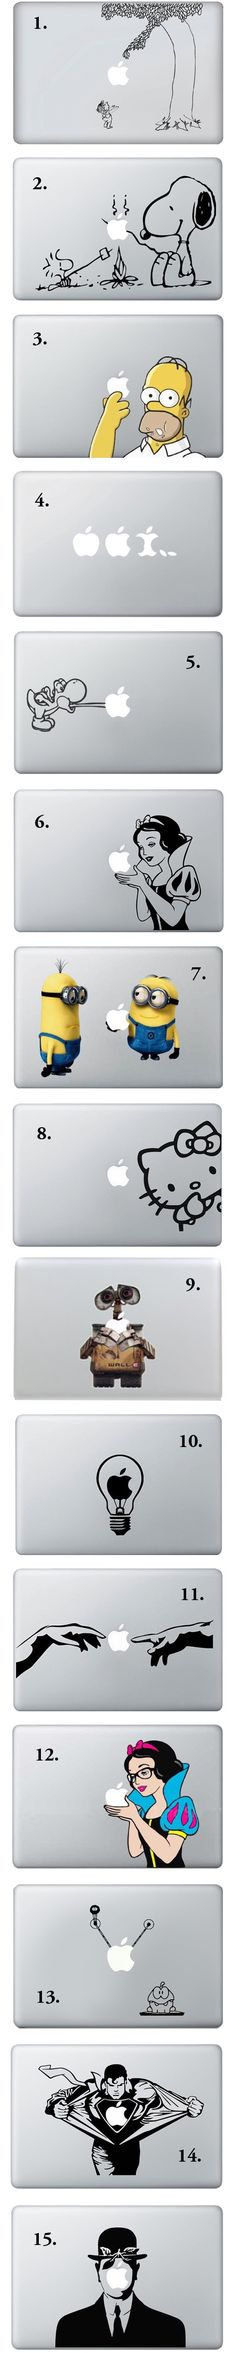 Macbook Vinyl Decals